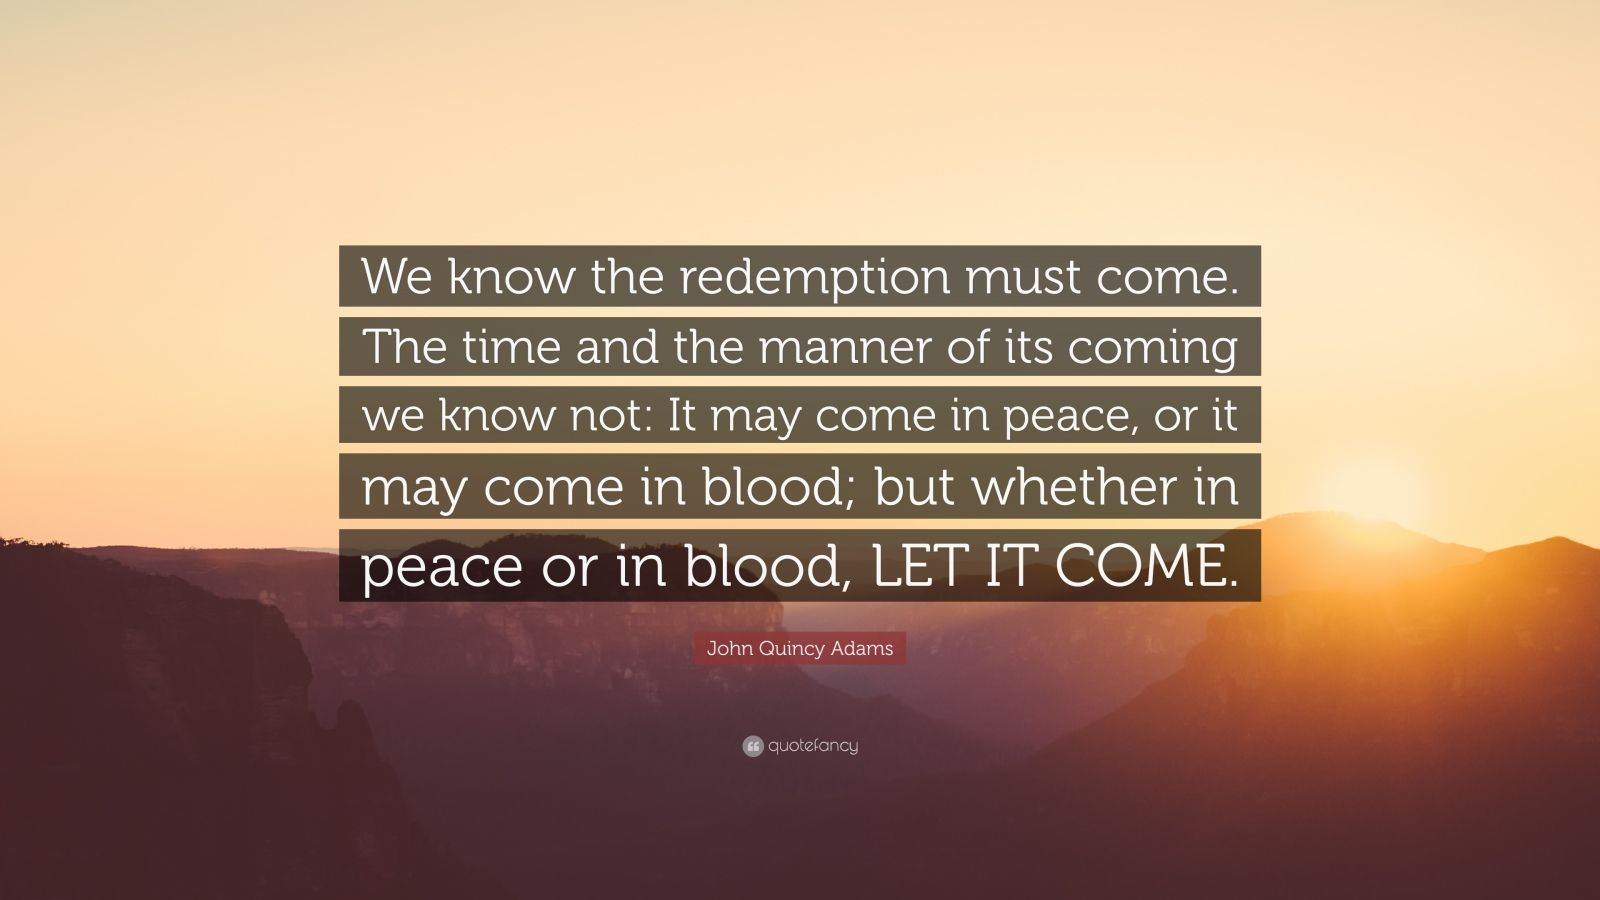 """John Quincy Adams Quote: """"We know the redemption must come. The time and the manner of its coming we know not: It may come in peace, or it may come in blood; but whether in peace or in blood, LET IT COME."""""""